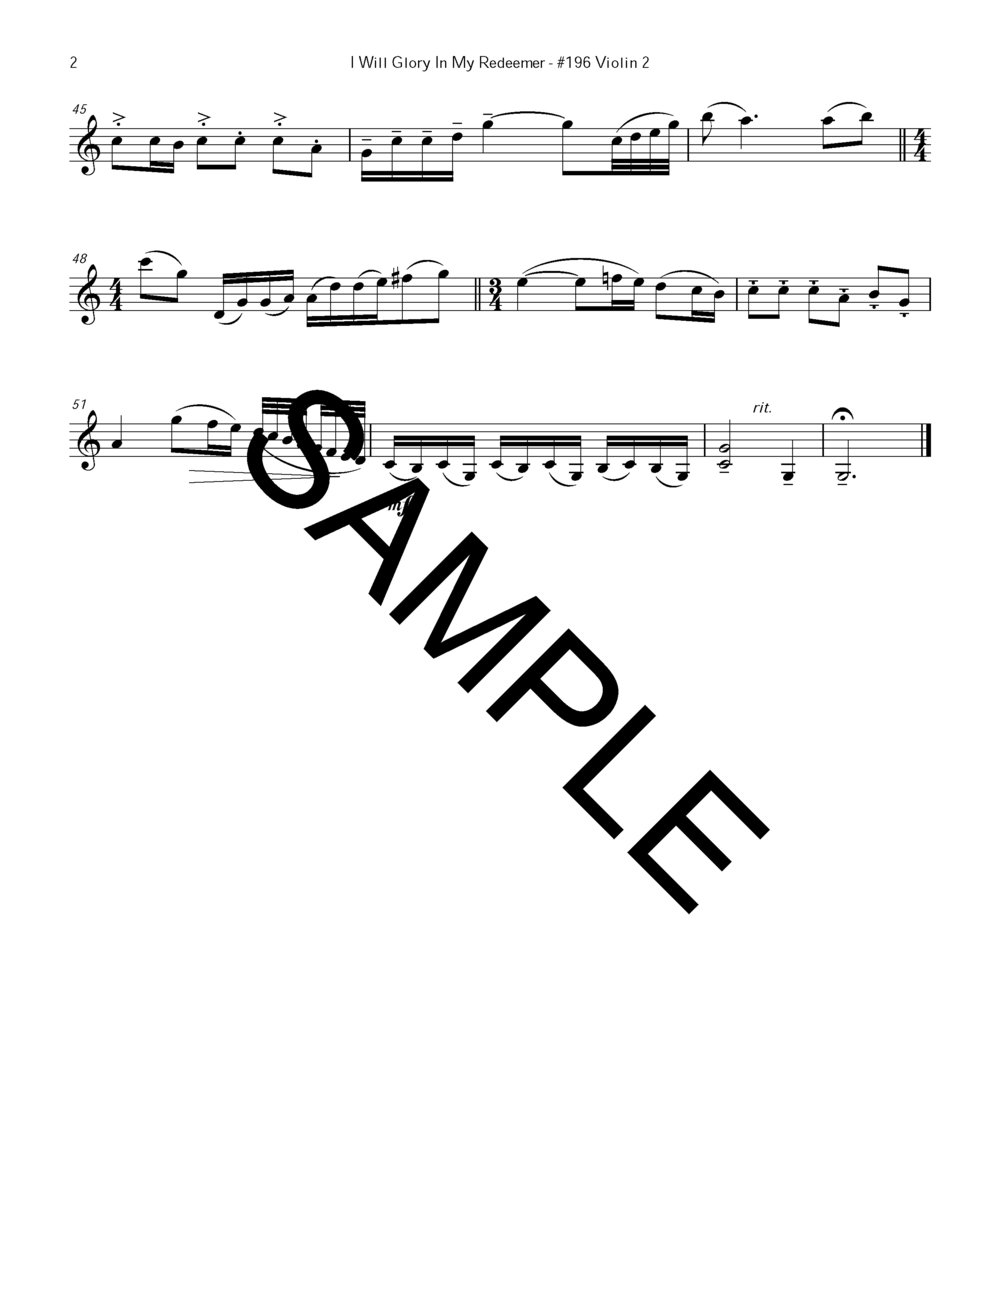 Sample I Will Glory in My Redeemer #196 Strngs Ob Piano Chrd Chrt Orgn M Rice arr_Page_32.jpg